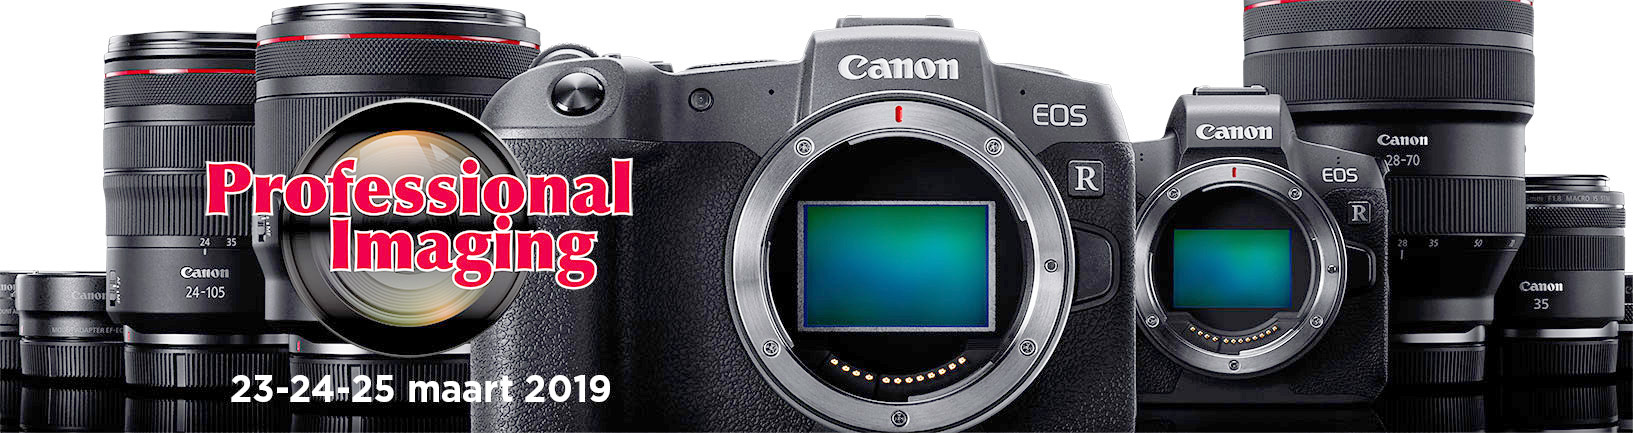 Canon Professional Imaging 2019